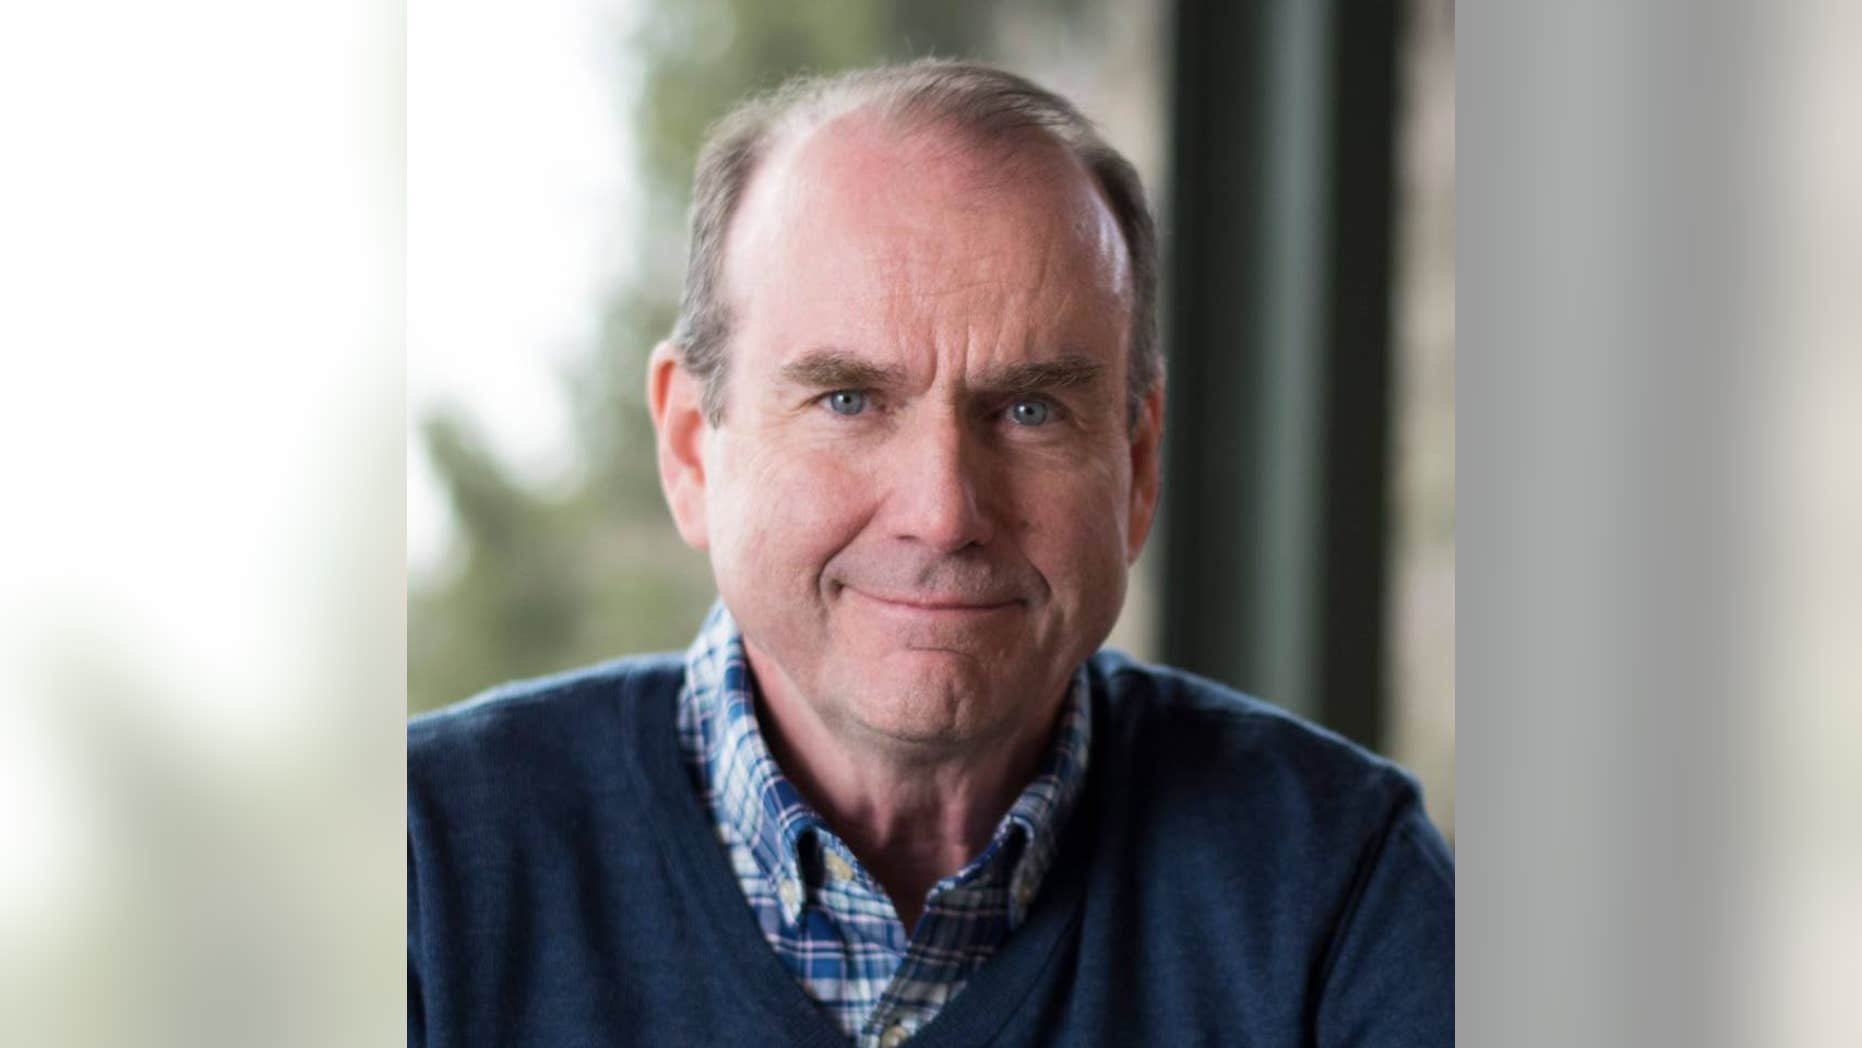 Scott Wallace, a liberal millionaire candidate running for Congress in Pennsylvania, has been a member of a controversial private club in South Africa that used to discriminate against Jewish and black people and invited controversial speakers, including former head of the Apartheid chemical and biological warfare program.